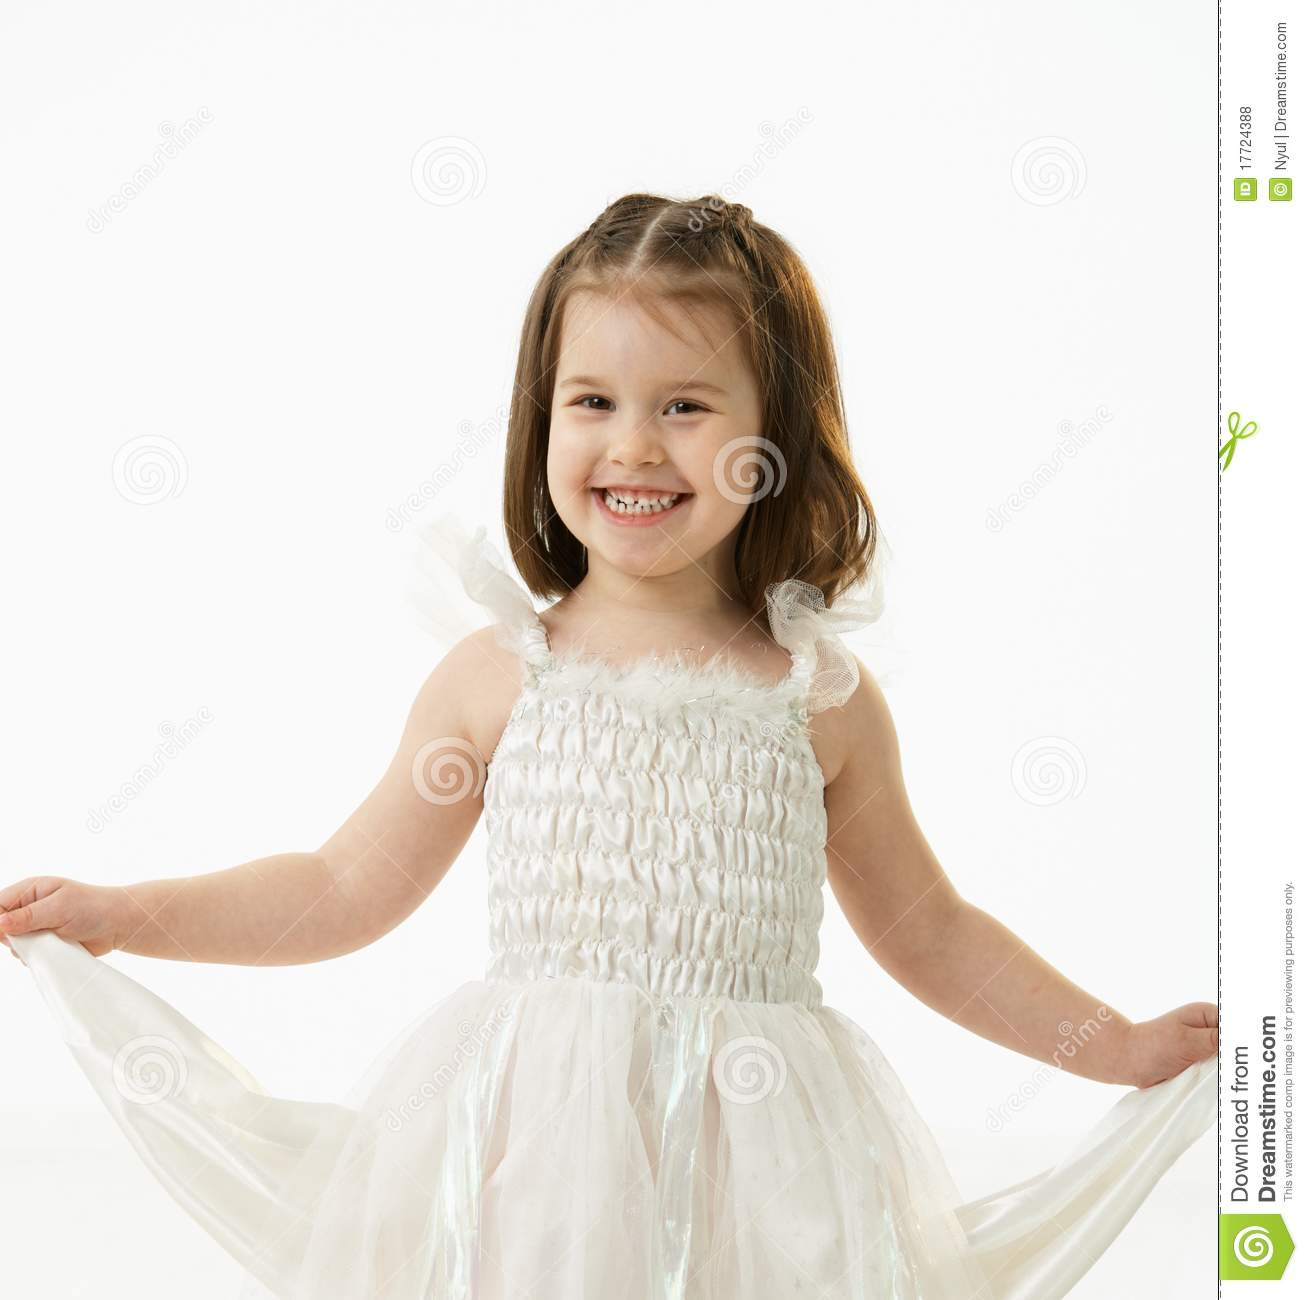 f6a86748a4d1 Portrait Of Happy Little Girl Stock Photo - Image of cute